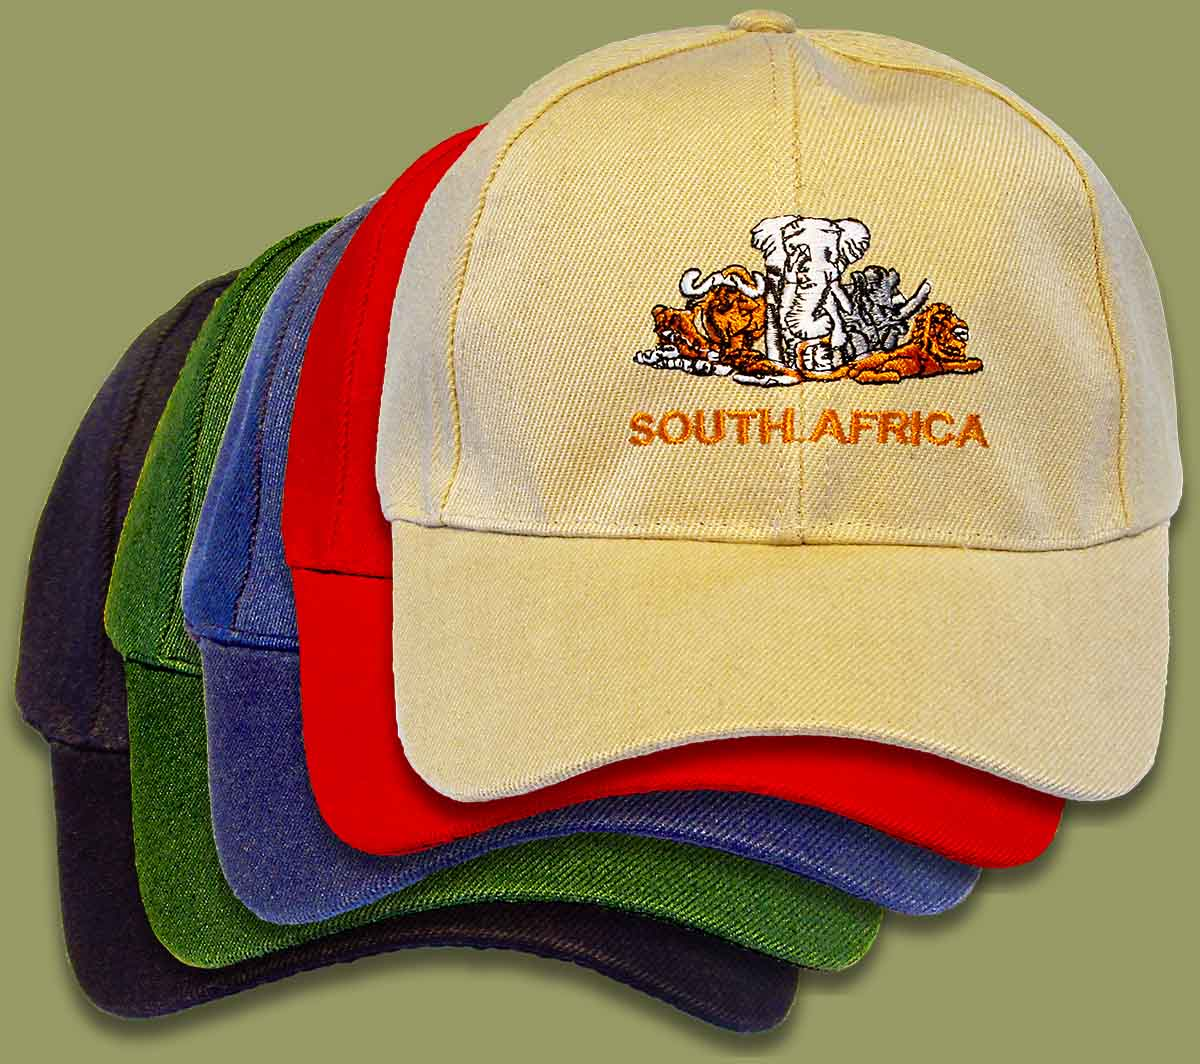 Big Five South Africa Caps Mixed Colors